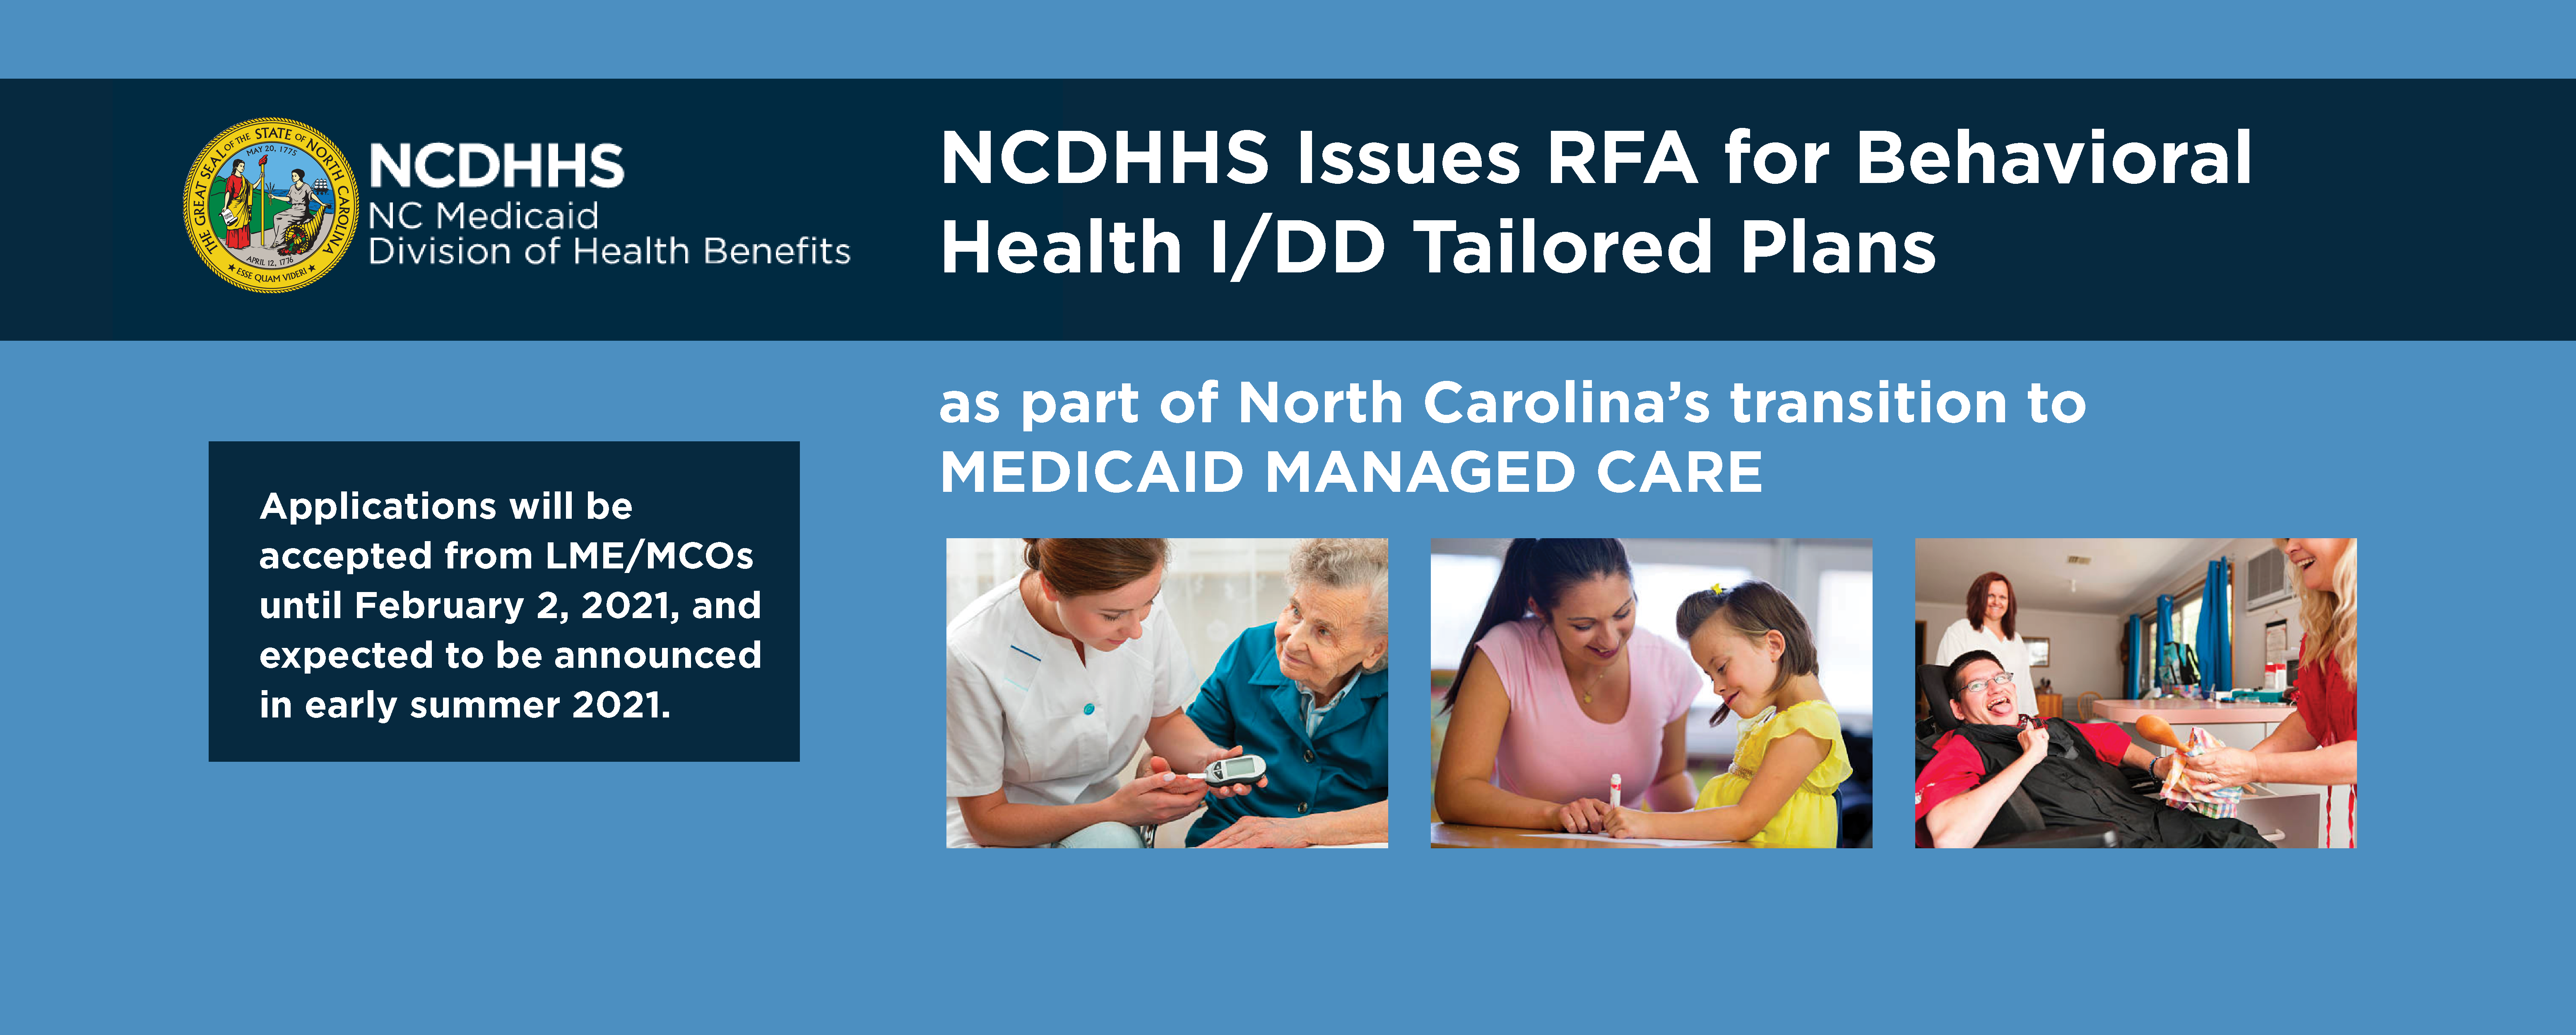 NCDHHS Issues RFA for Behavioral Health I/DD Tailored Plans as part of North Carolina's transition to Medicaid Managed Care